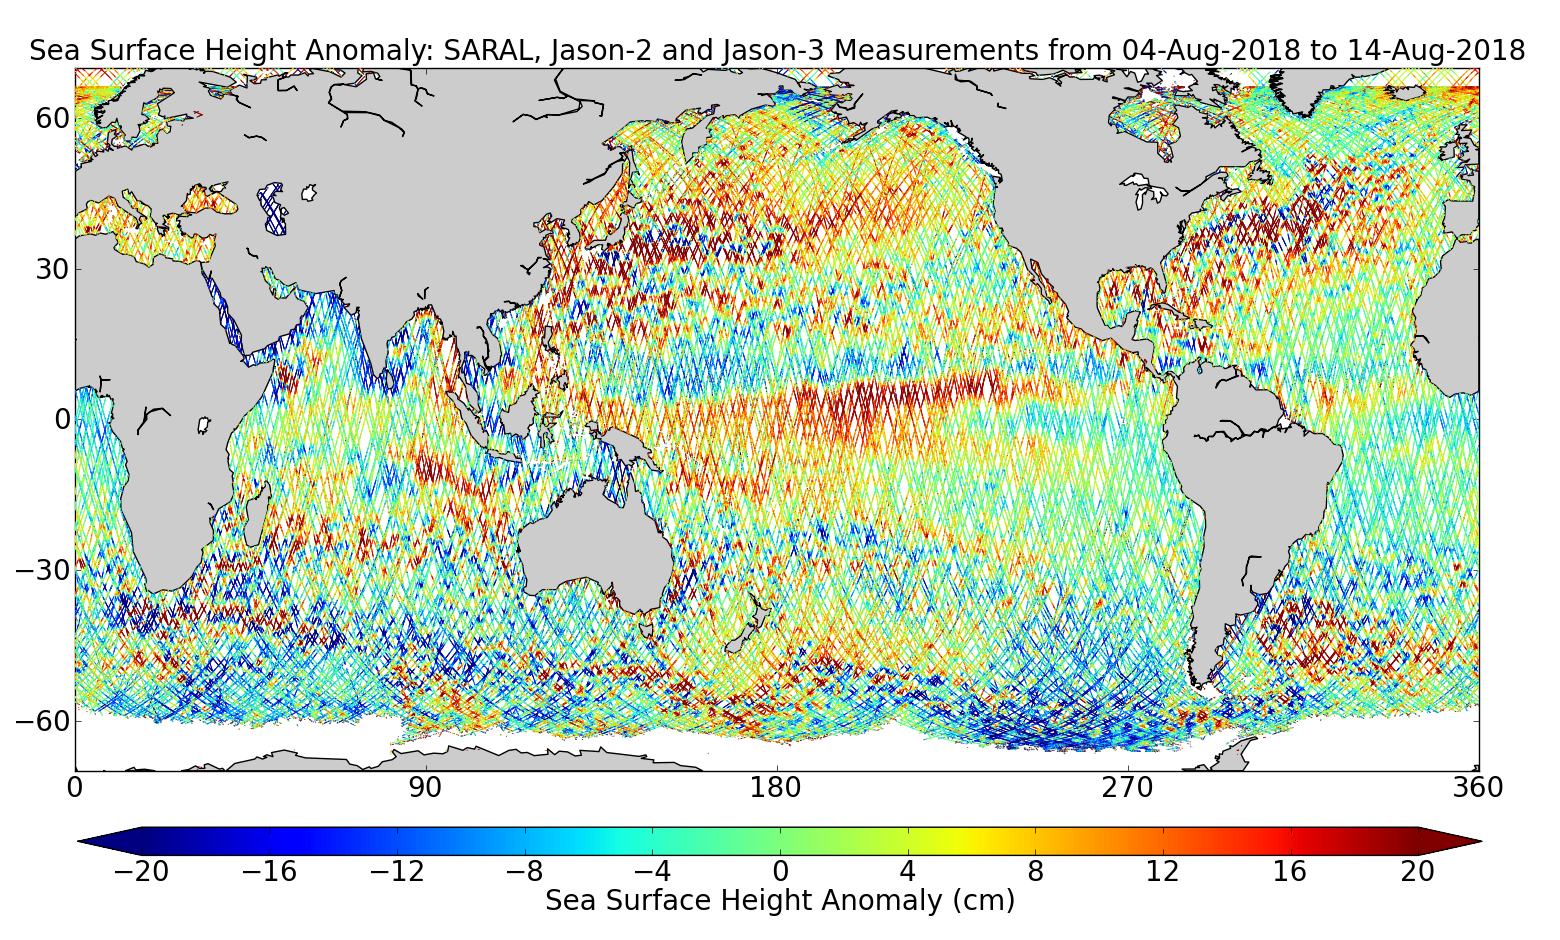 Sea Surface Height Anomaly: SARAL, Jason-2 and Jason-3 Measurements from 04-Aug-2018 to 14-Aug-2018